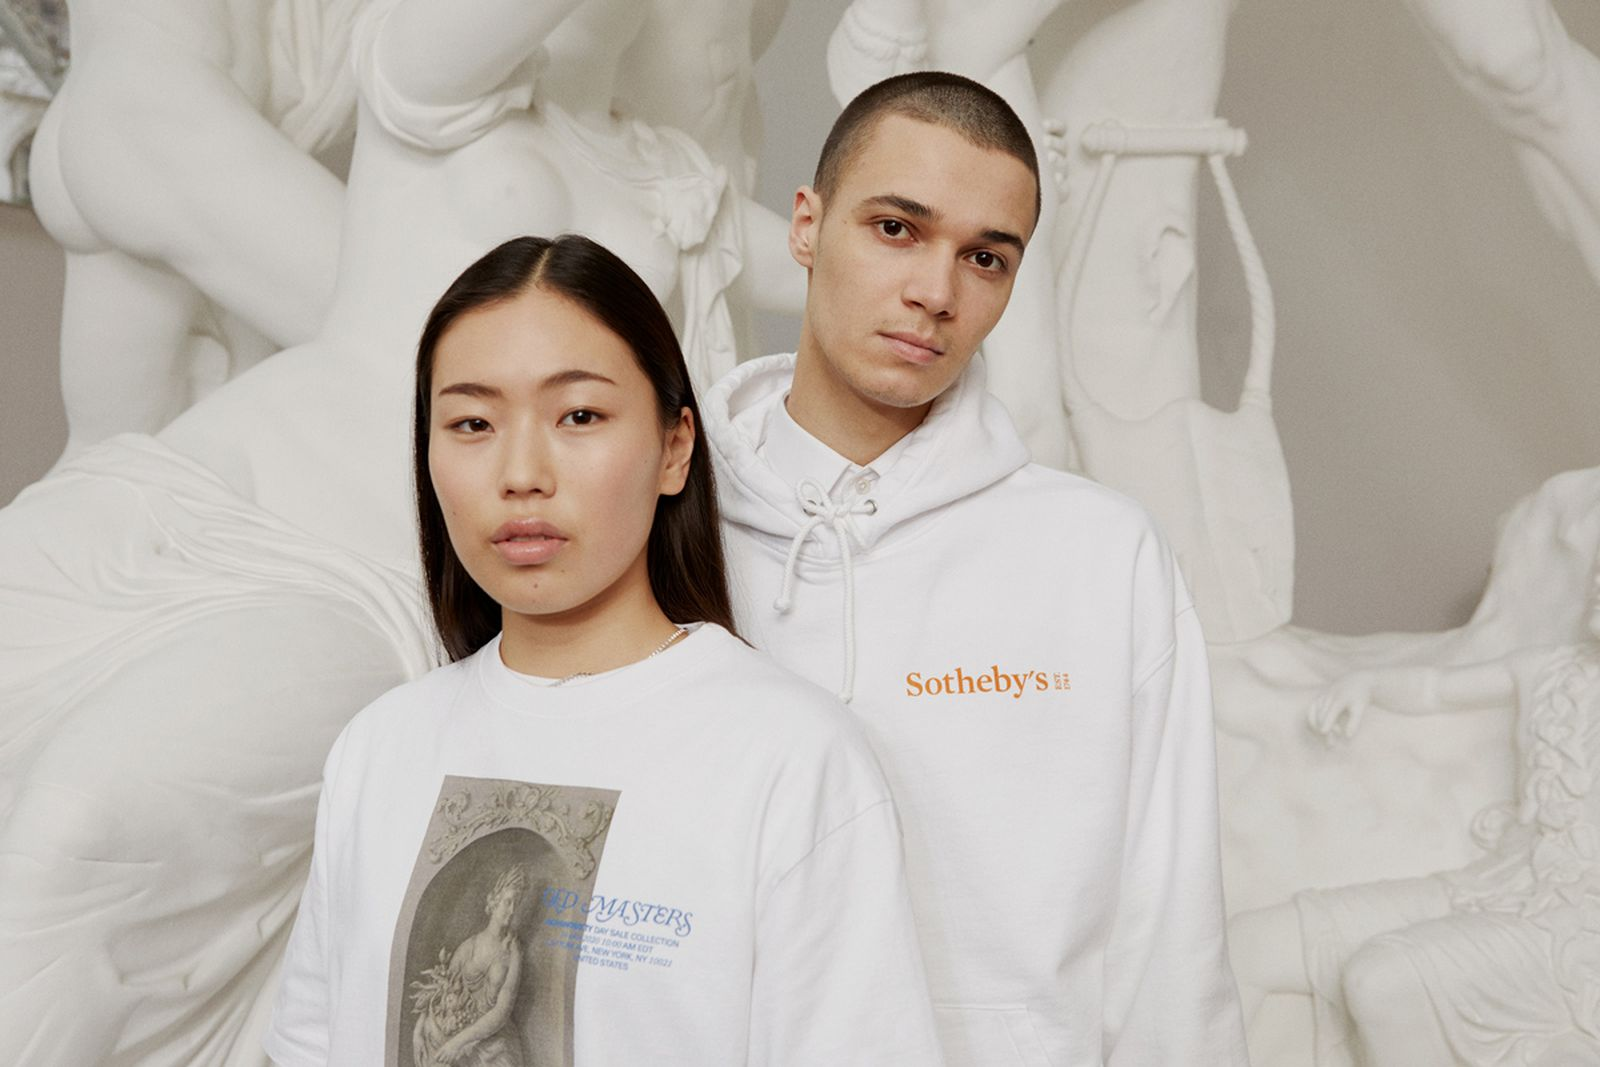 Sotheby's x Highsnobiety White T-Shirt and Hoodie